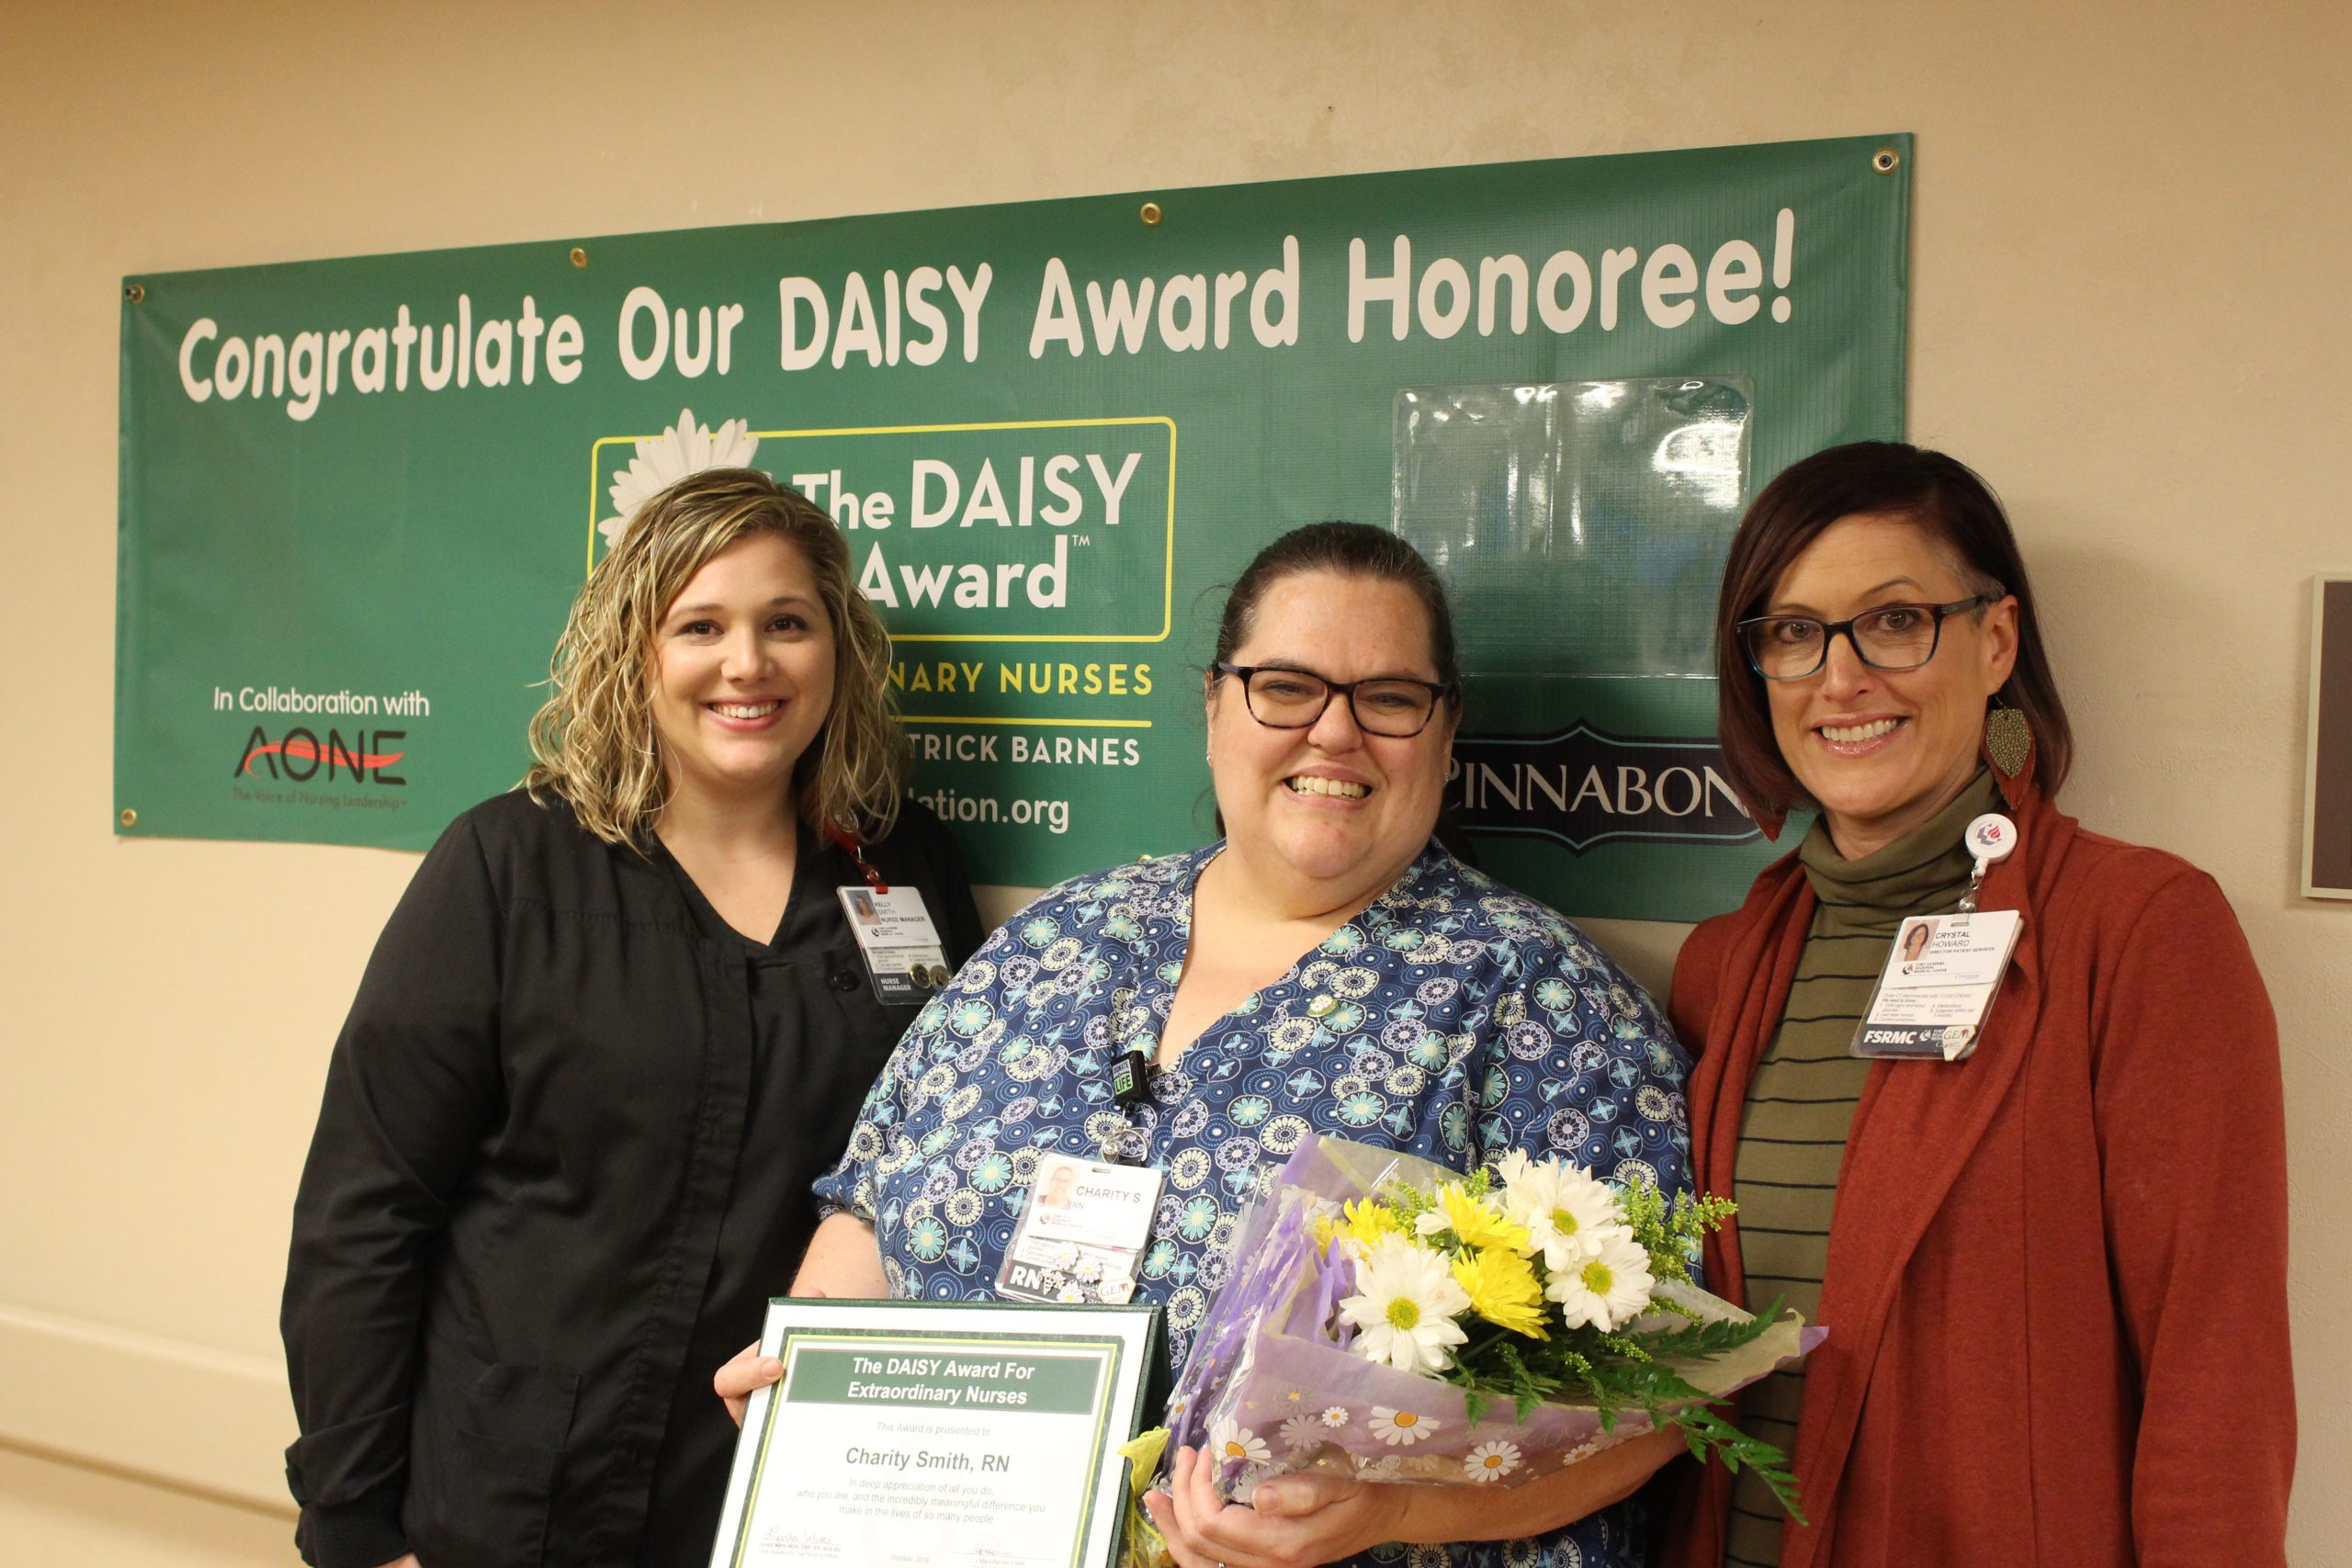 DAISY Award Winner – Charity Smith